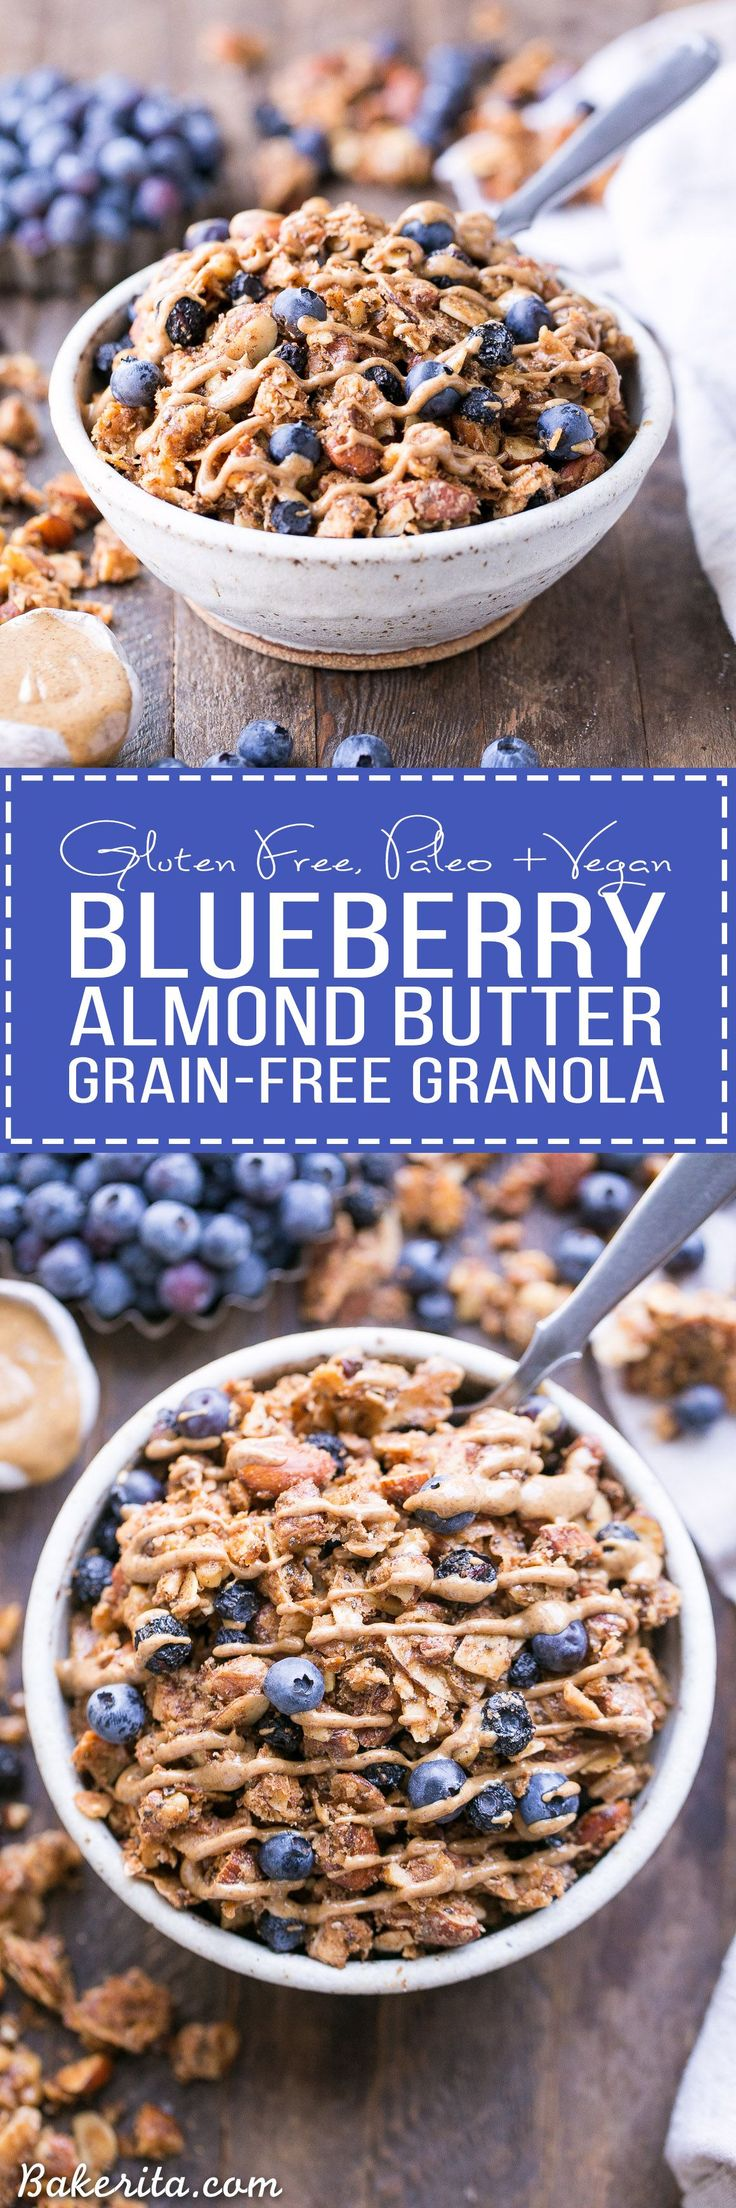 This Blueberry Almond Butter Grain-Free Granola is an easy and satisfying gluten-free, vegan and paleo granola recipe that makes the perfect breakfast or snack. It's made with simple, wholesome ingred(Vegan Easy Breakfast)